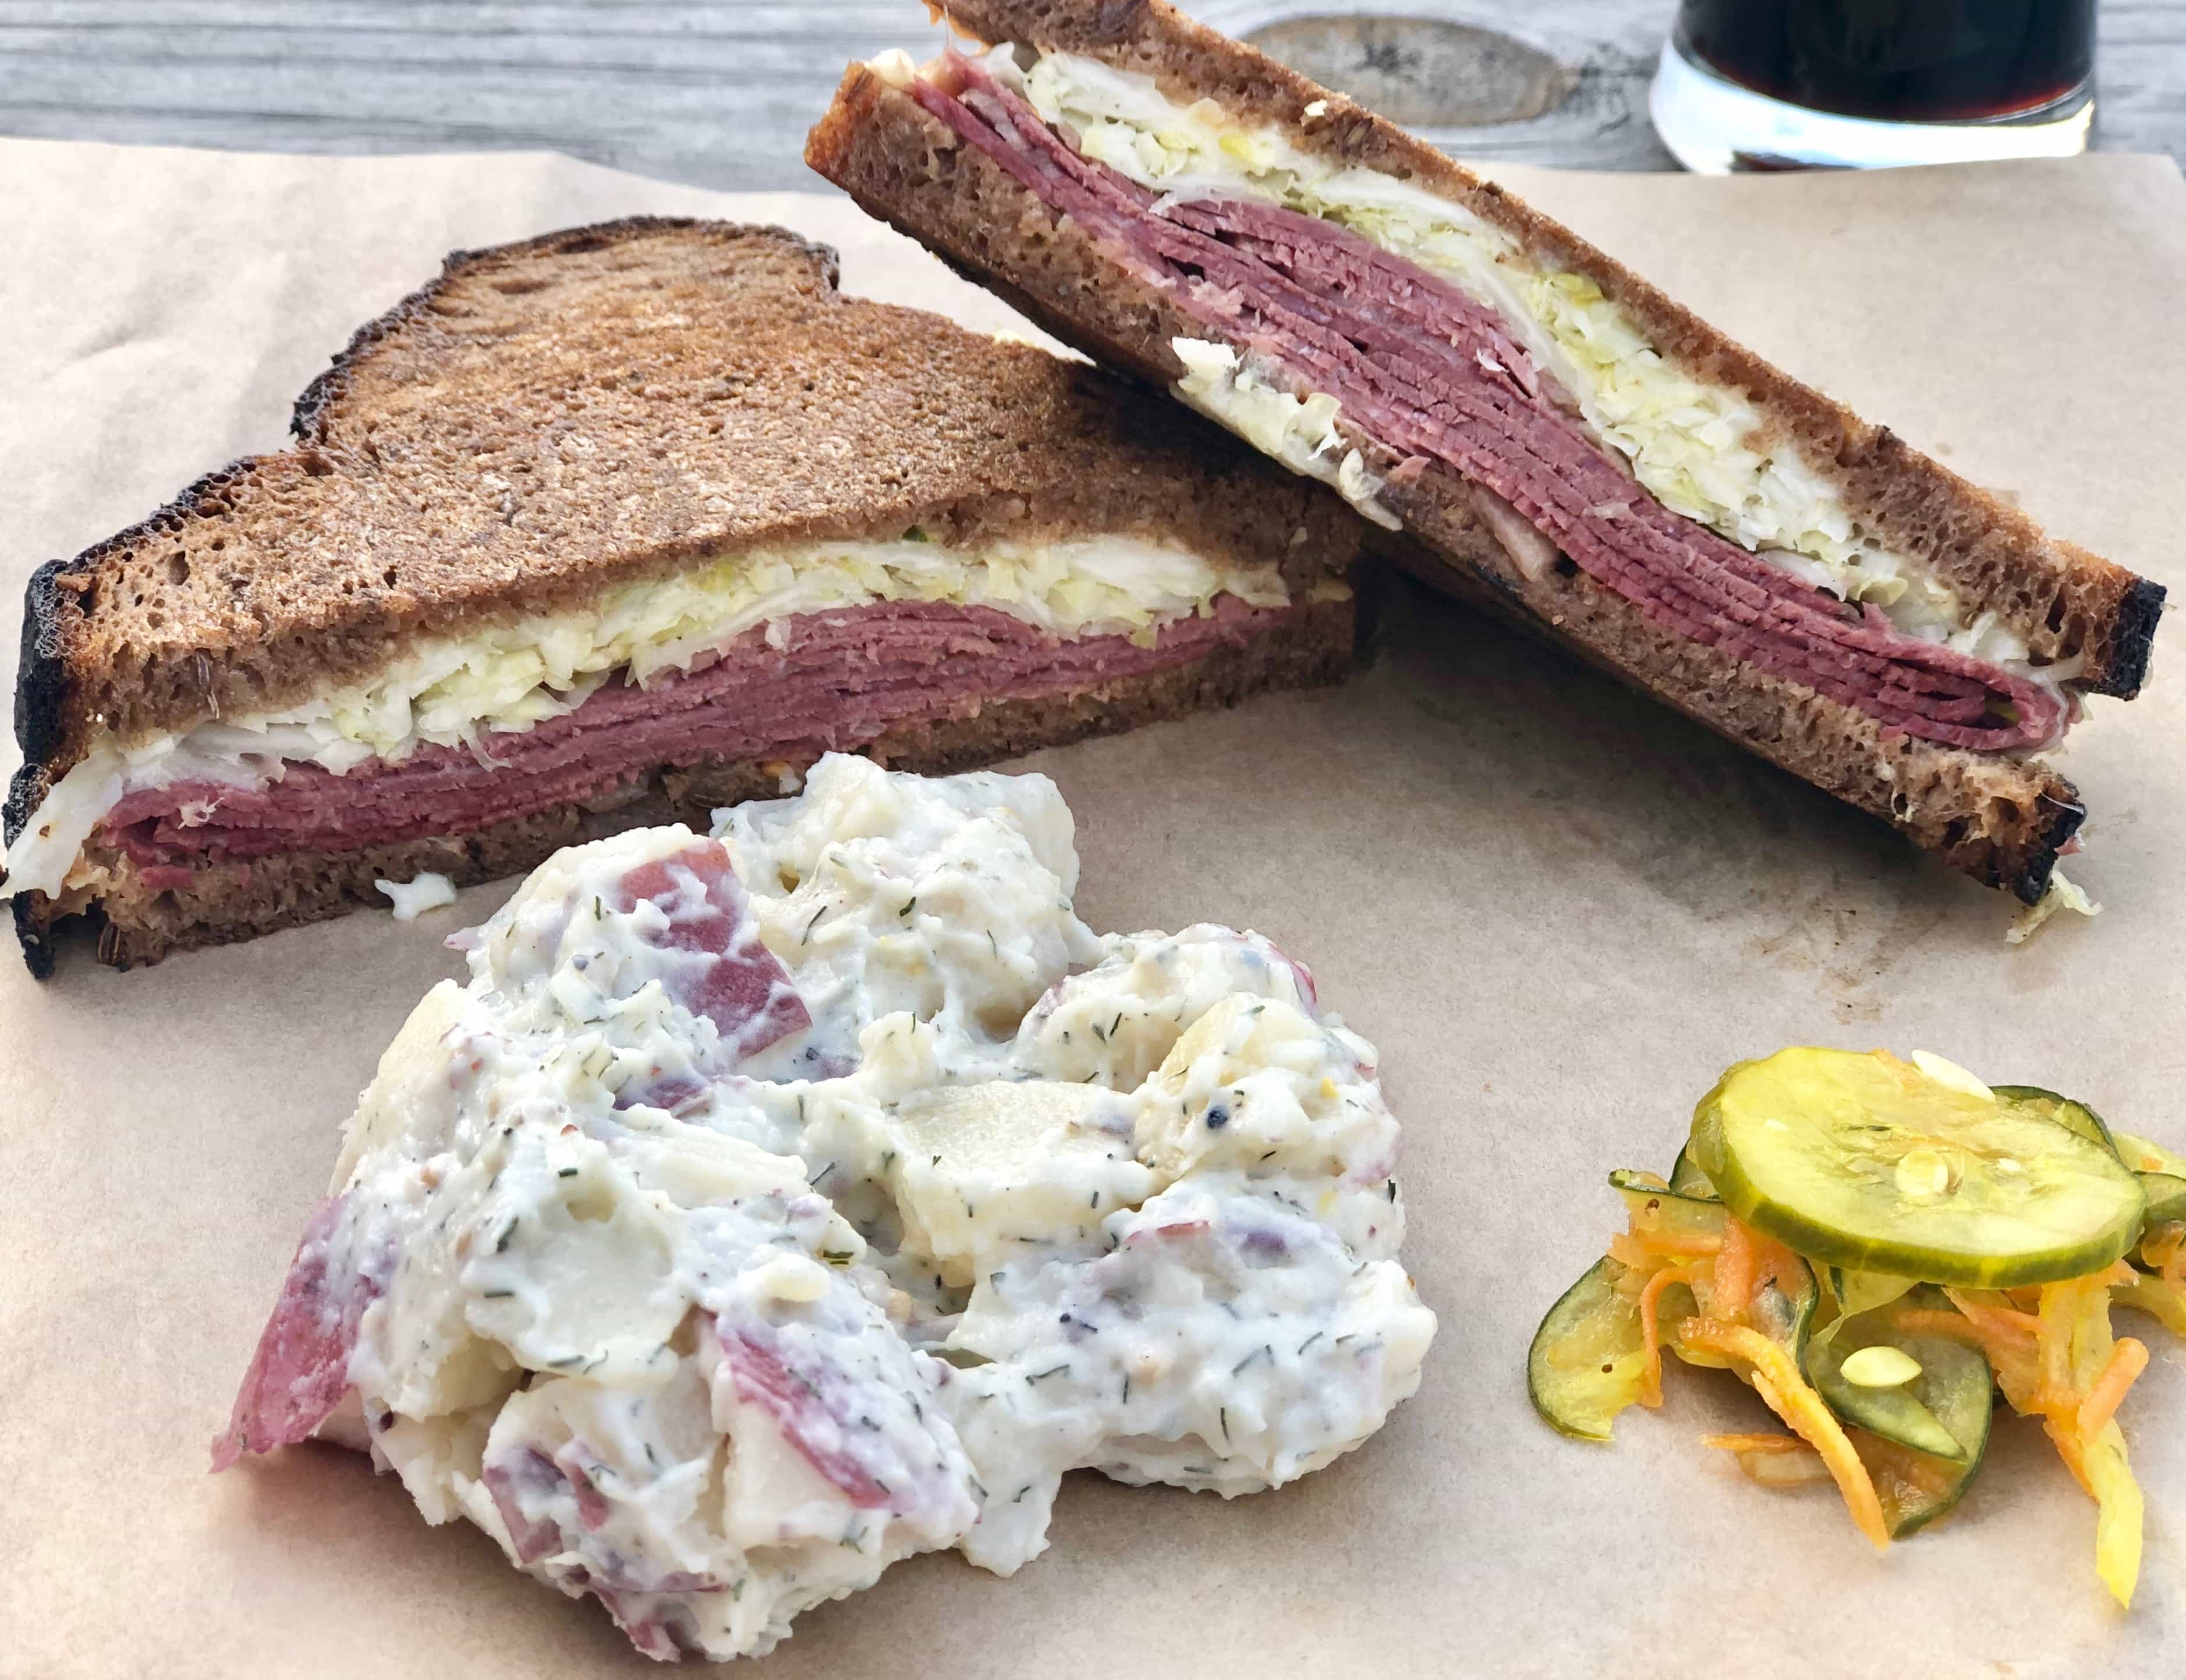 grilled reuben sandwich with a side of potato salad and pickles